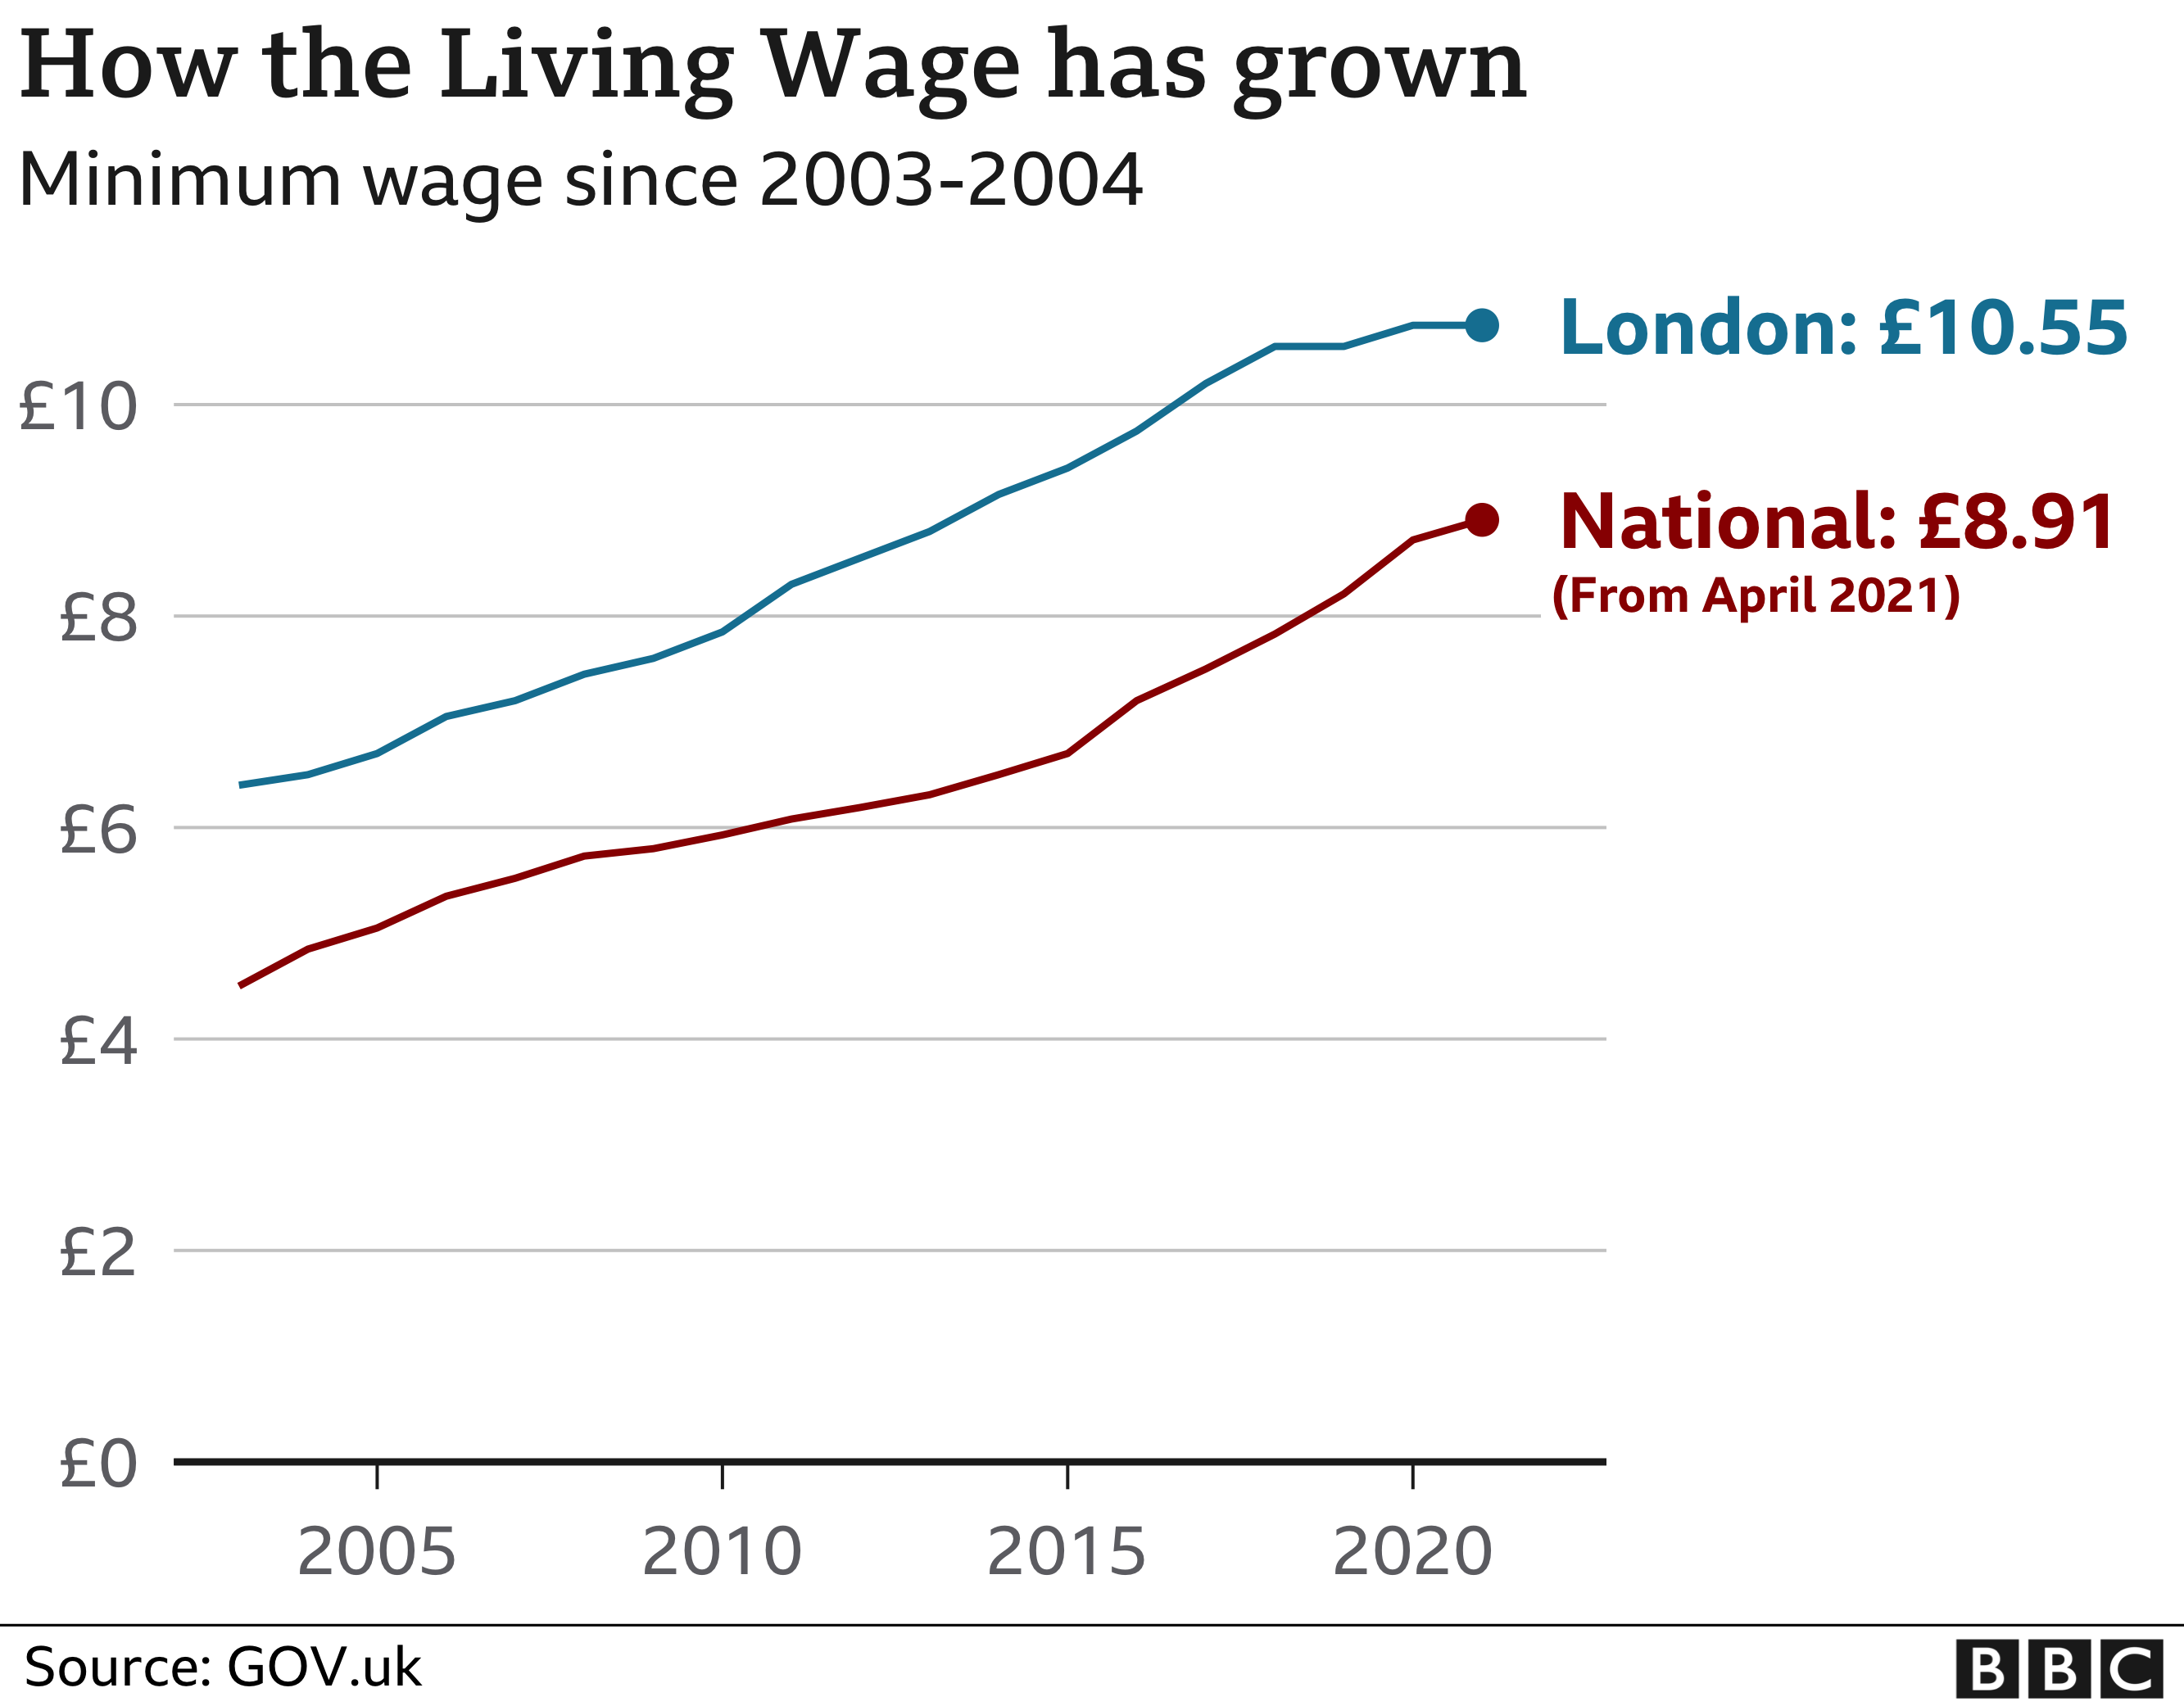 National minimum wage will rise to £8.91